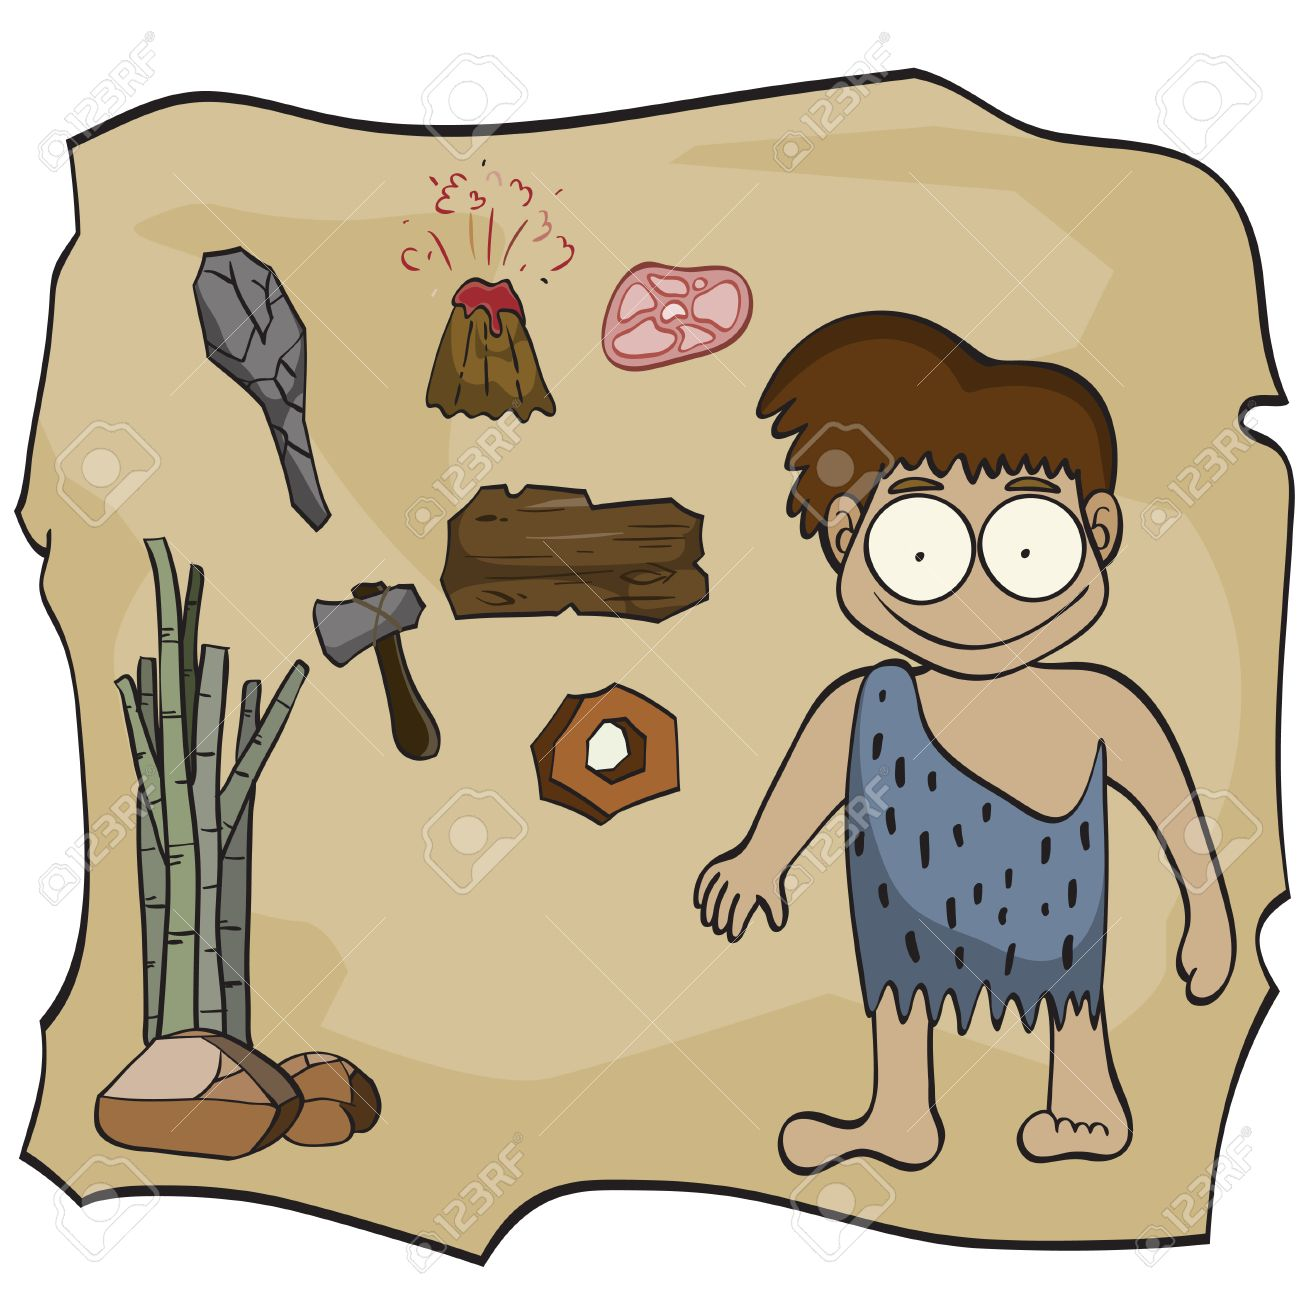 Image result for stone age cartoon